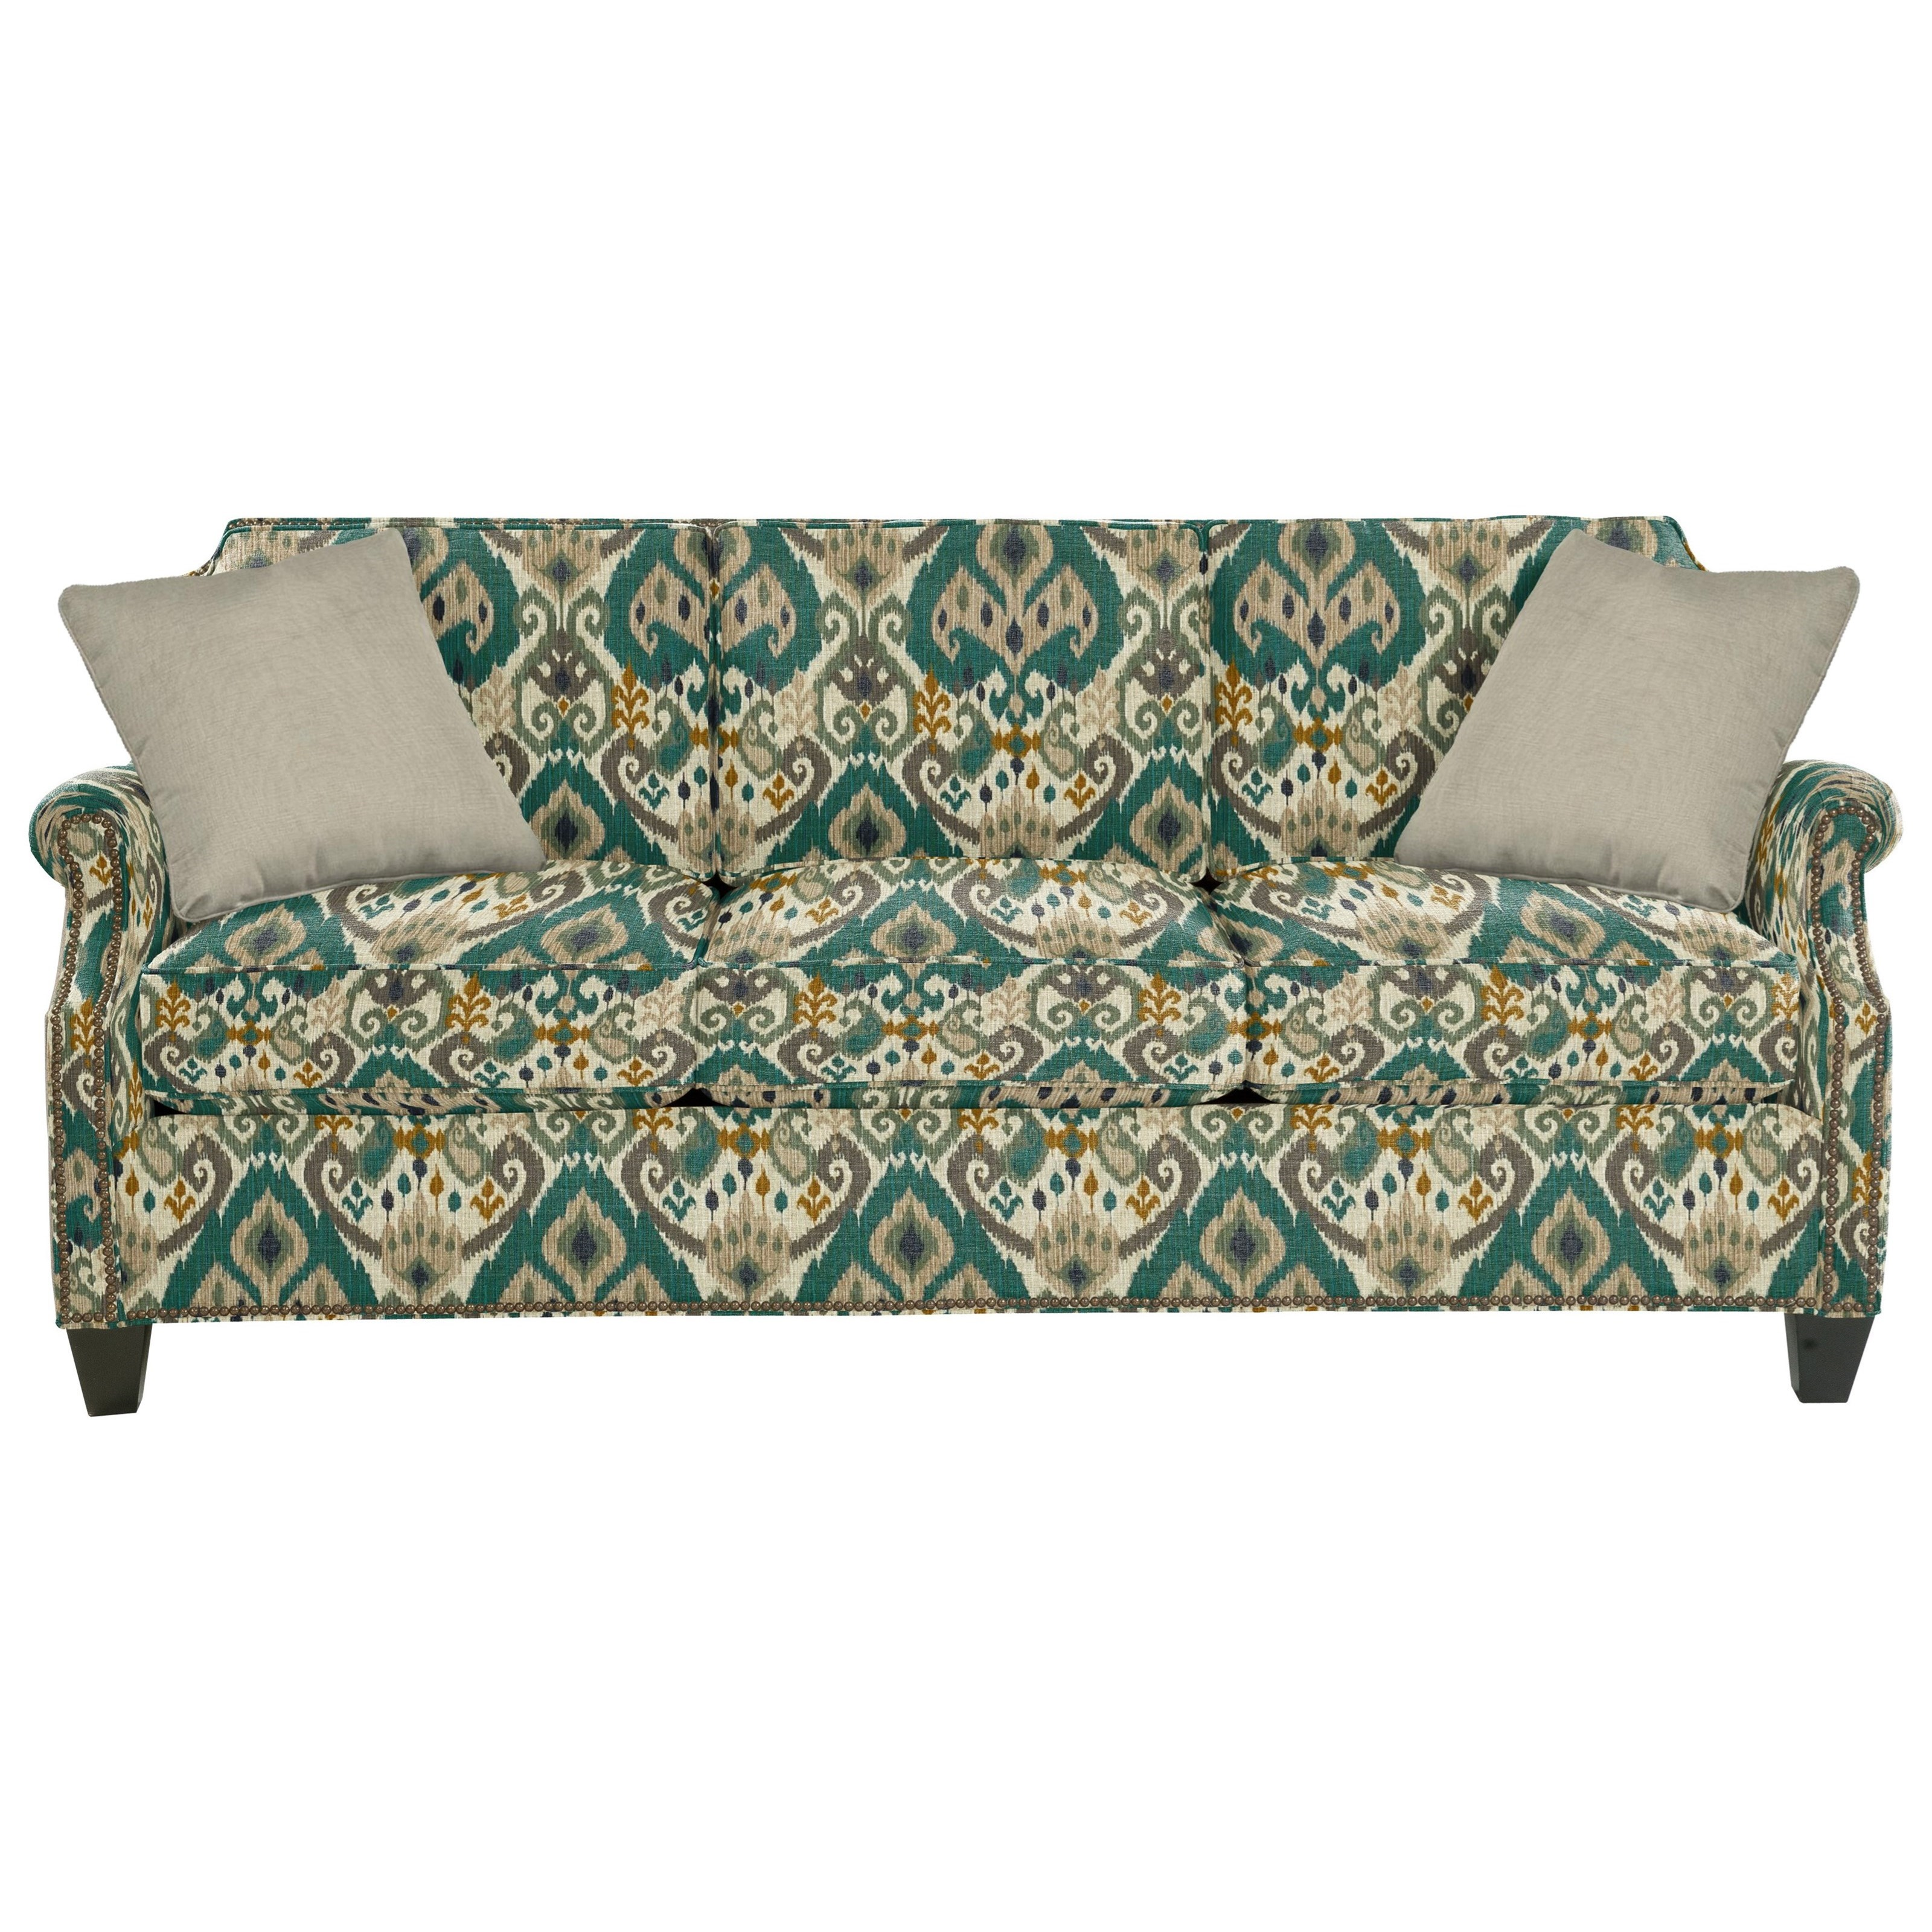 Craftmaster 9383 Sofa - Item Number: 938350-WHITFIELD-23